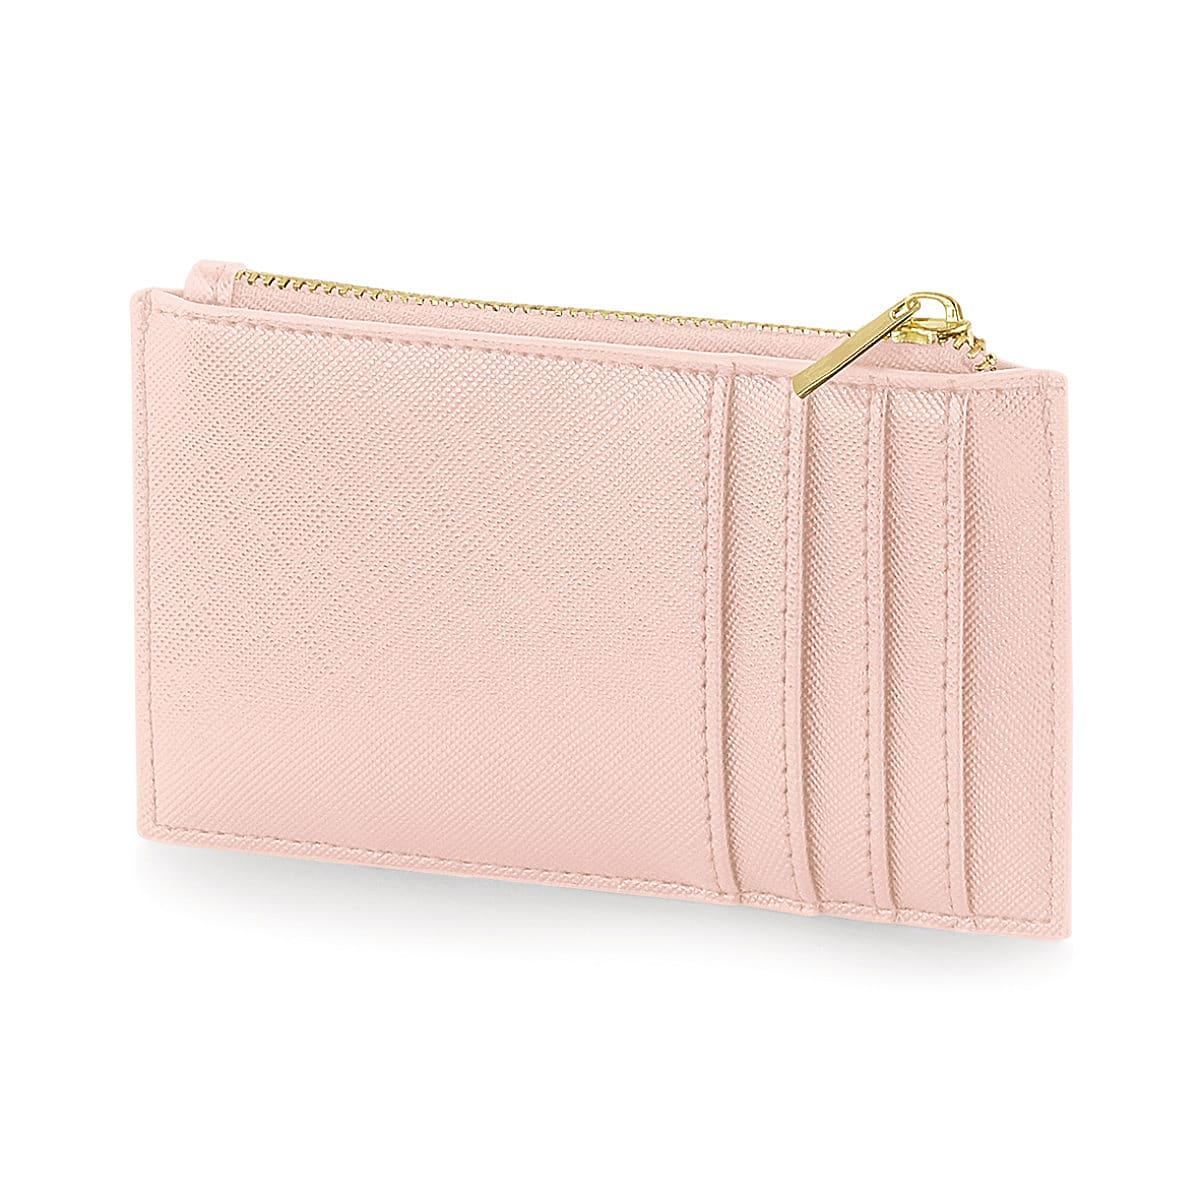 Bagbase Boutique Card Holder in Soft Pink (Product Code: BG754)